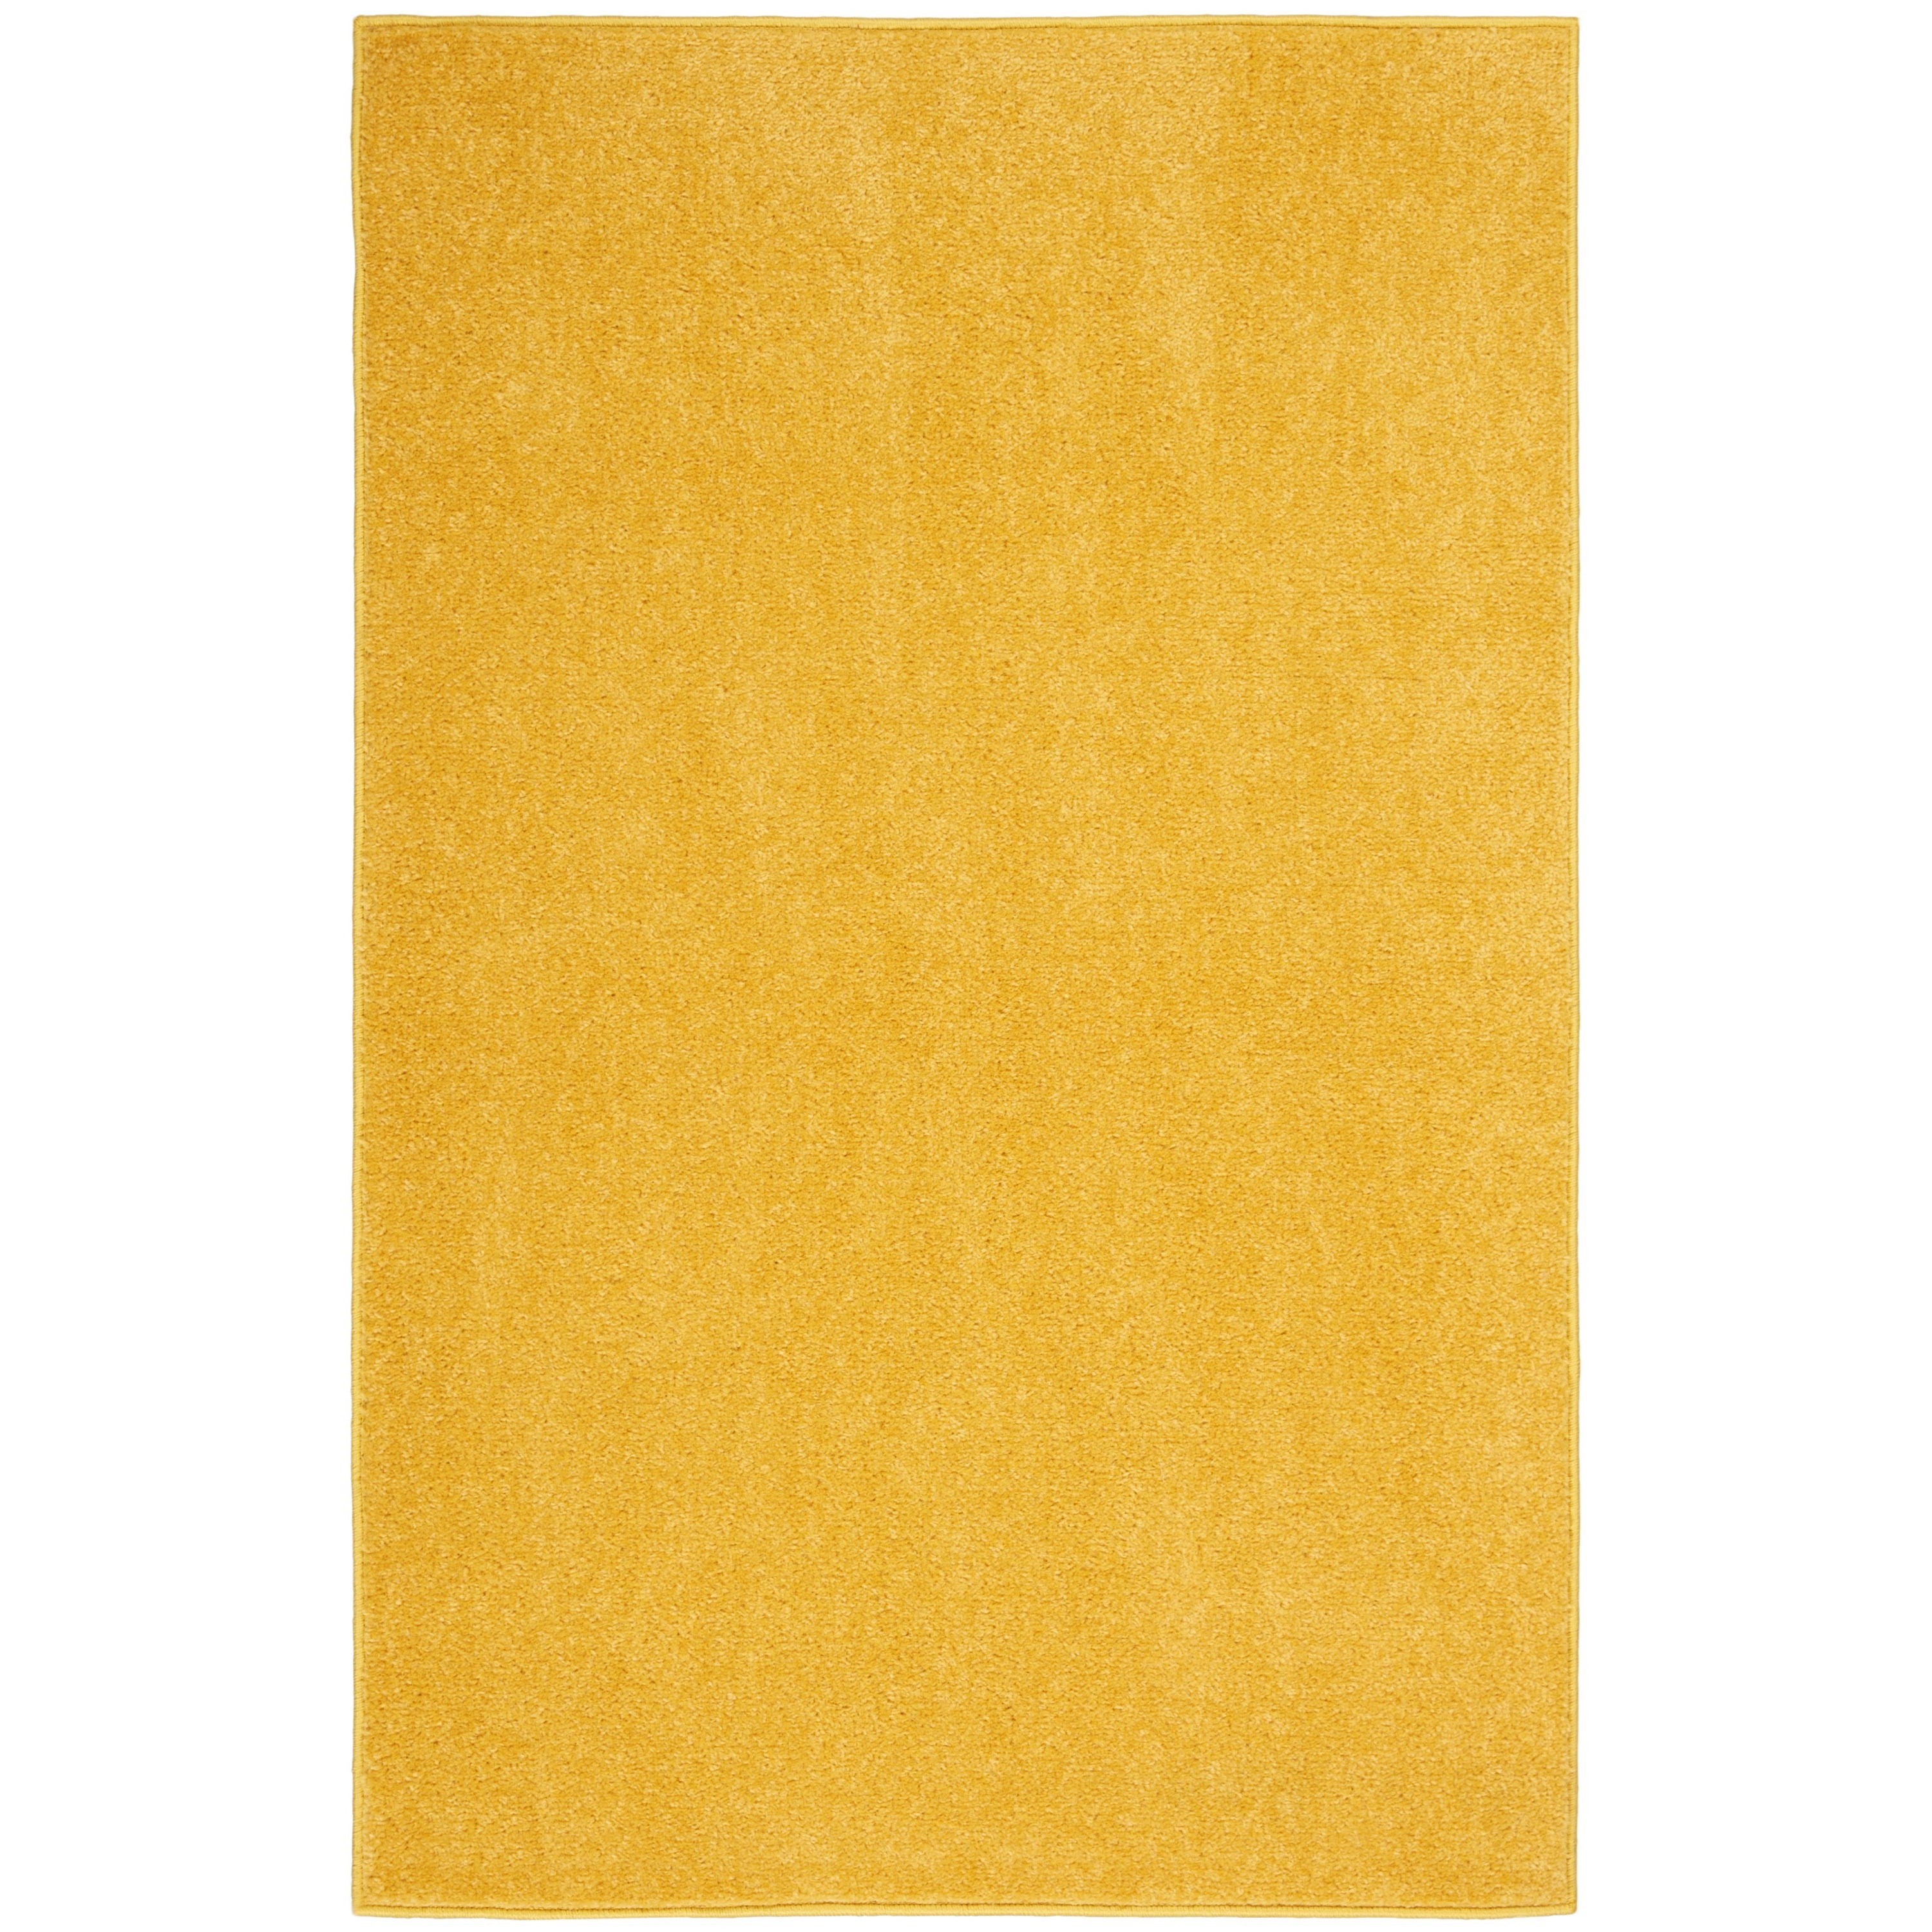 Nourison Essentials 2020 2' x 4' Rug by Nourison at Home Collections Furniture